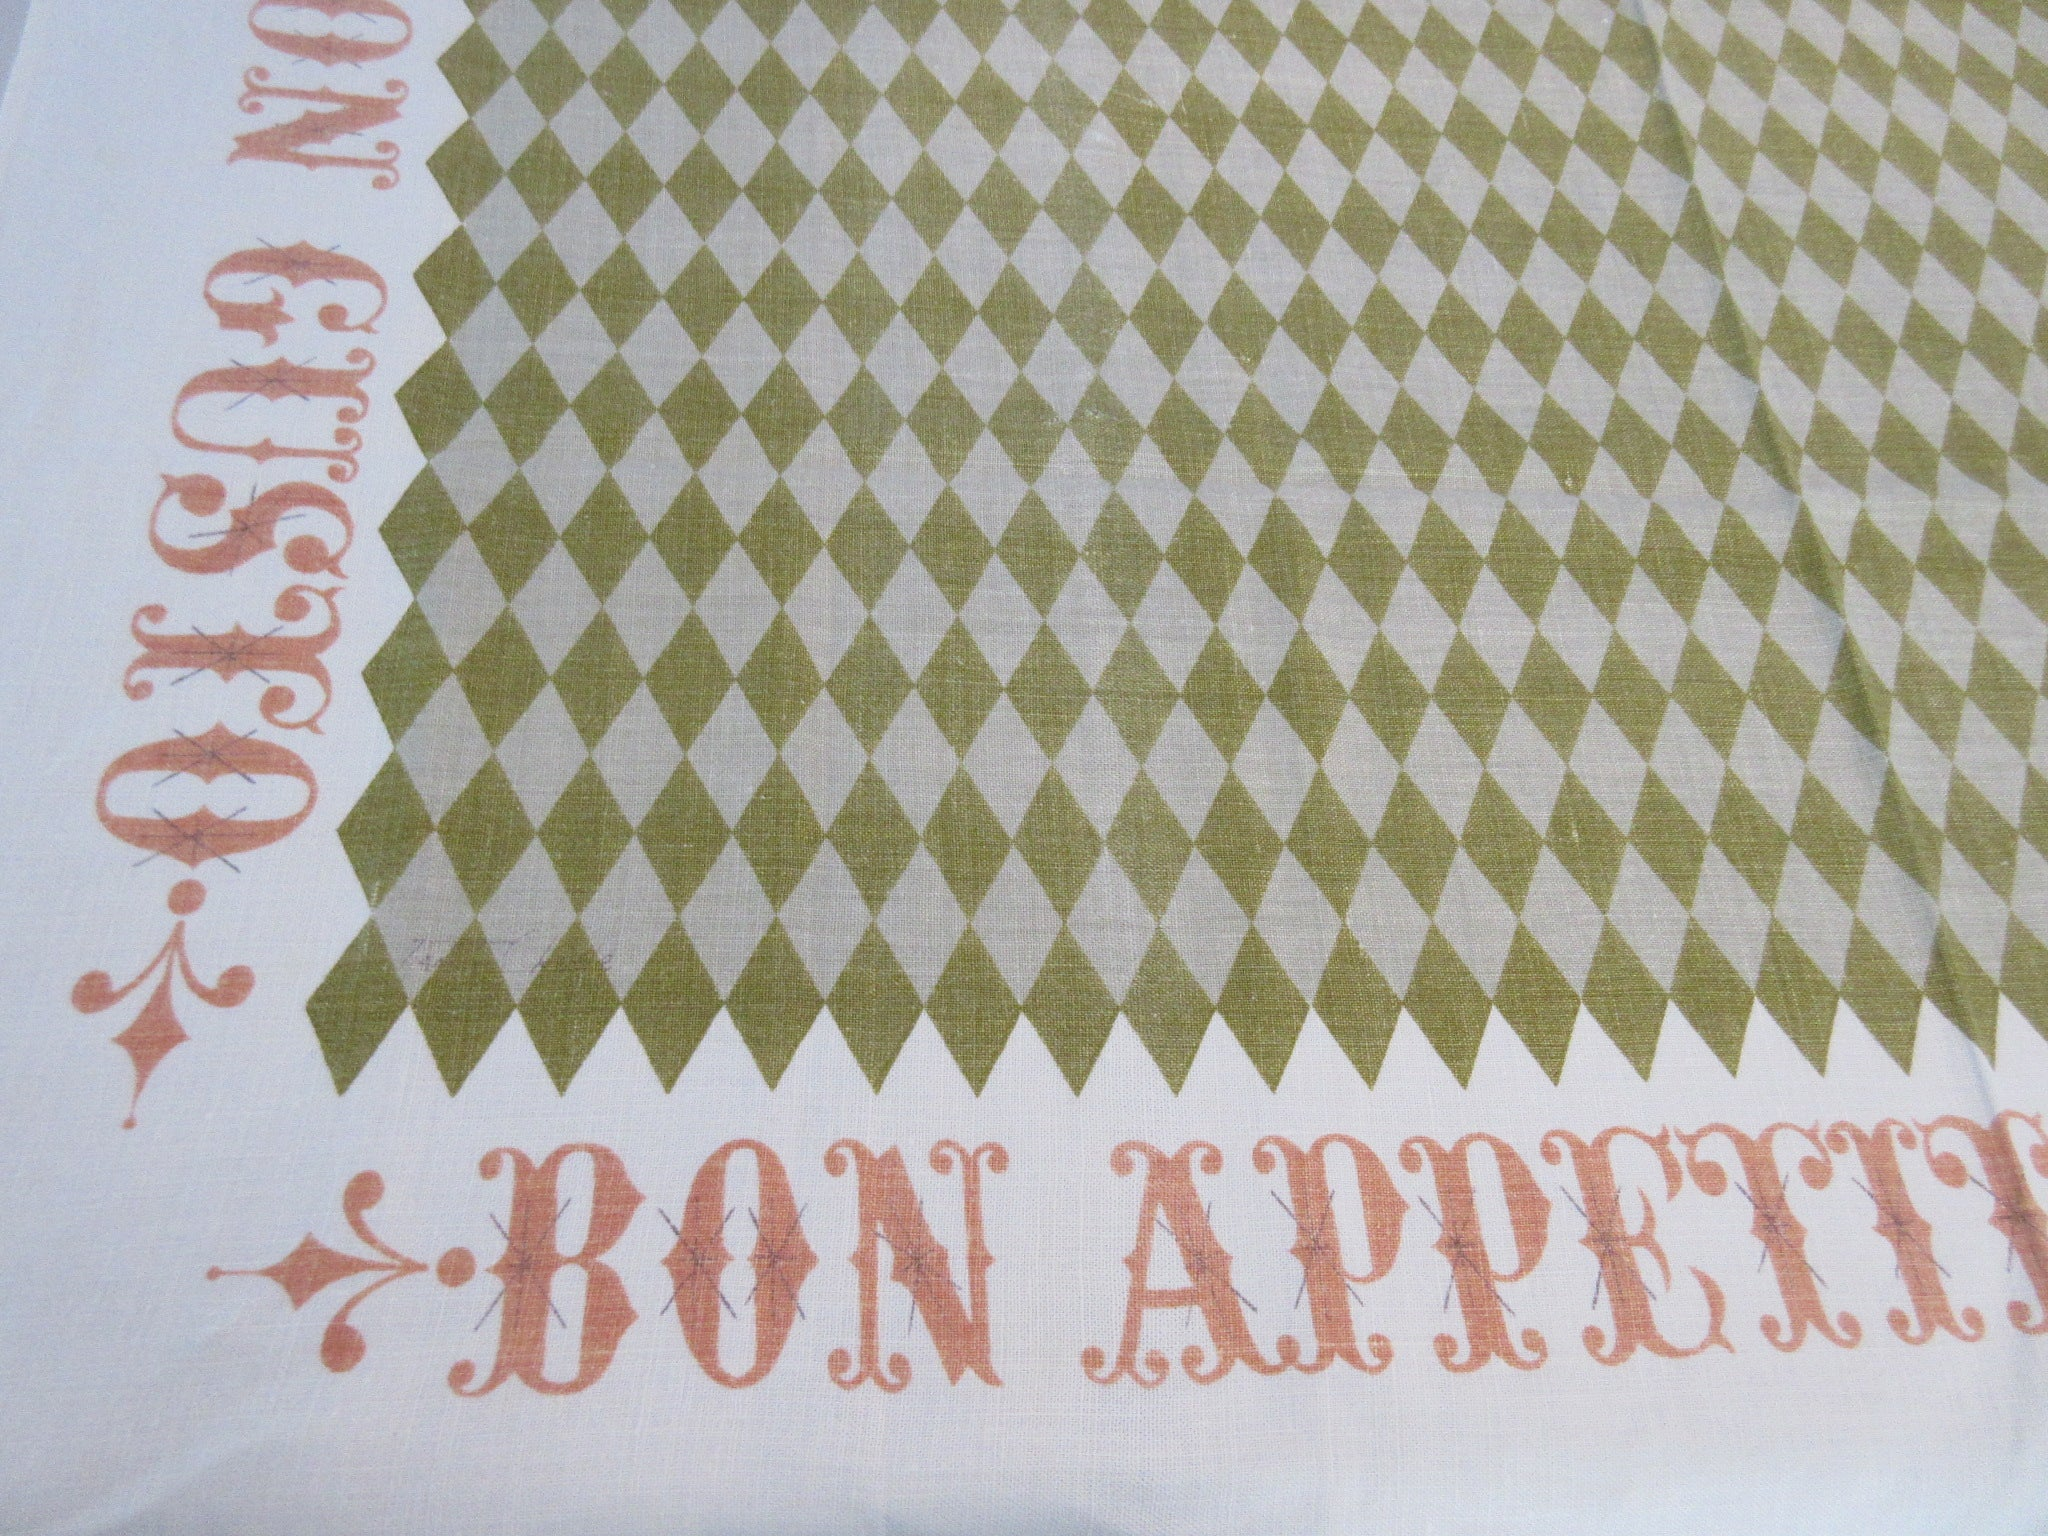 Bon Appetit Tammis Keefe Novelty Cutter? Vintage Printed Tablecloth (51 X 49)